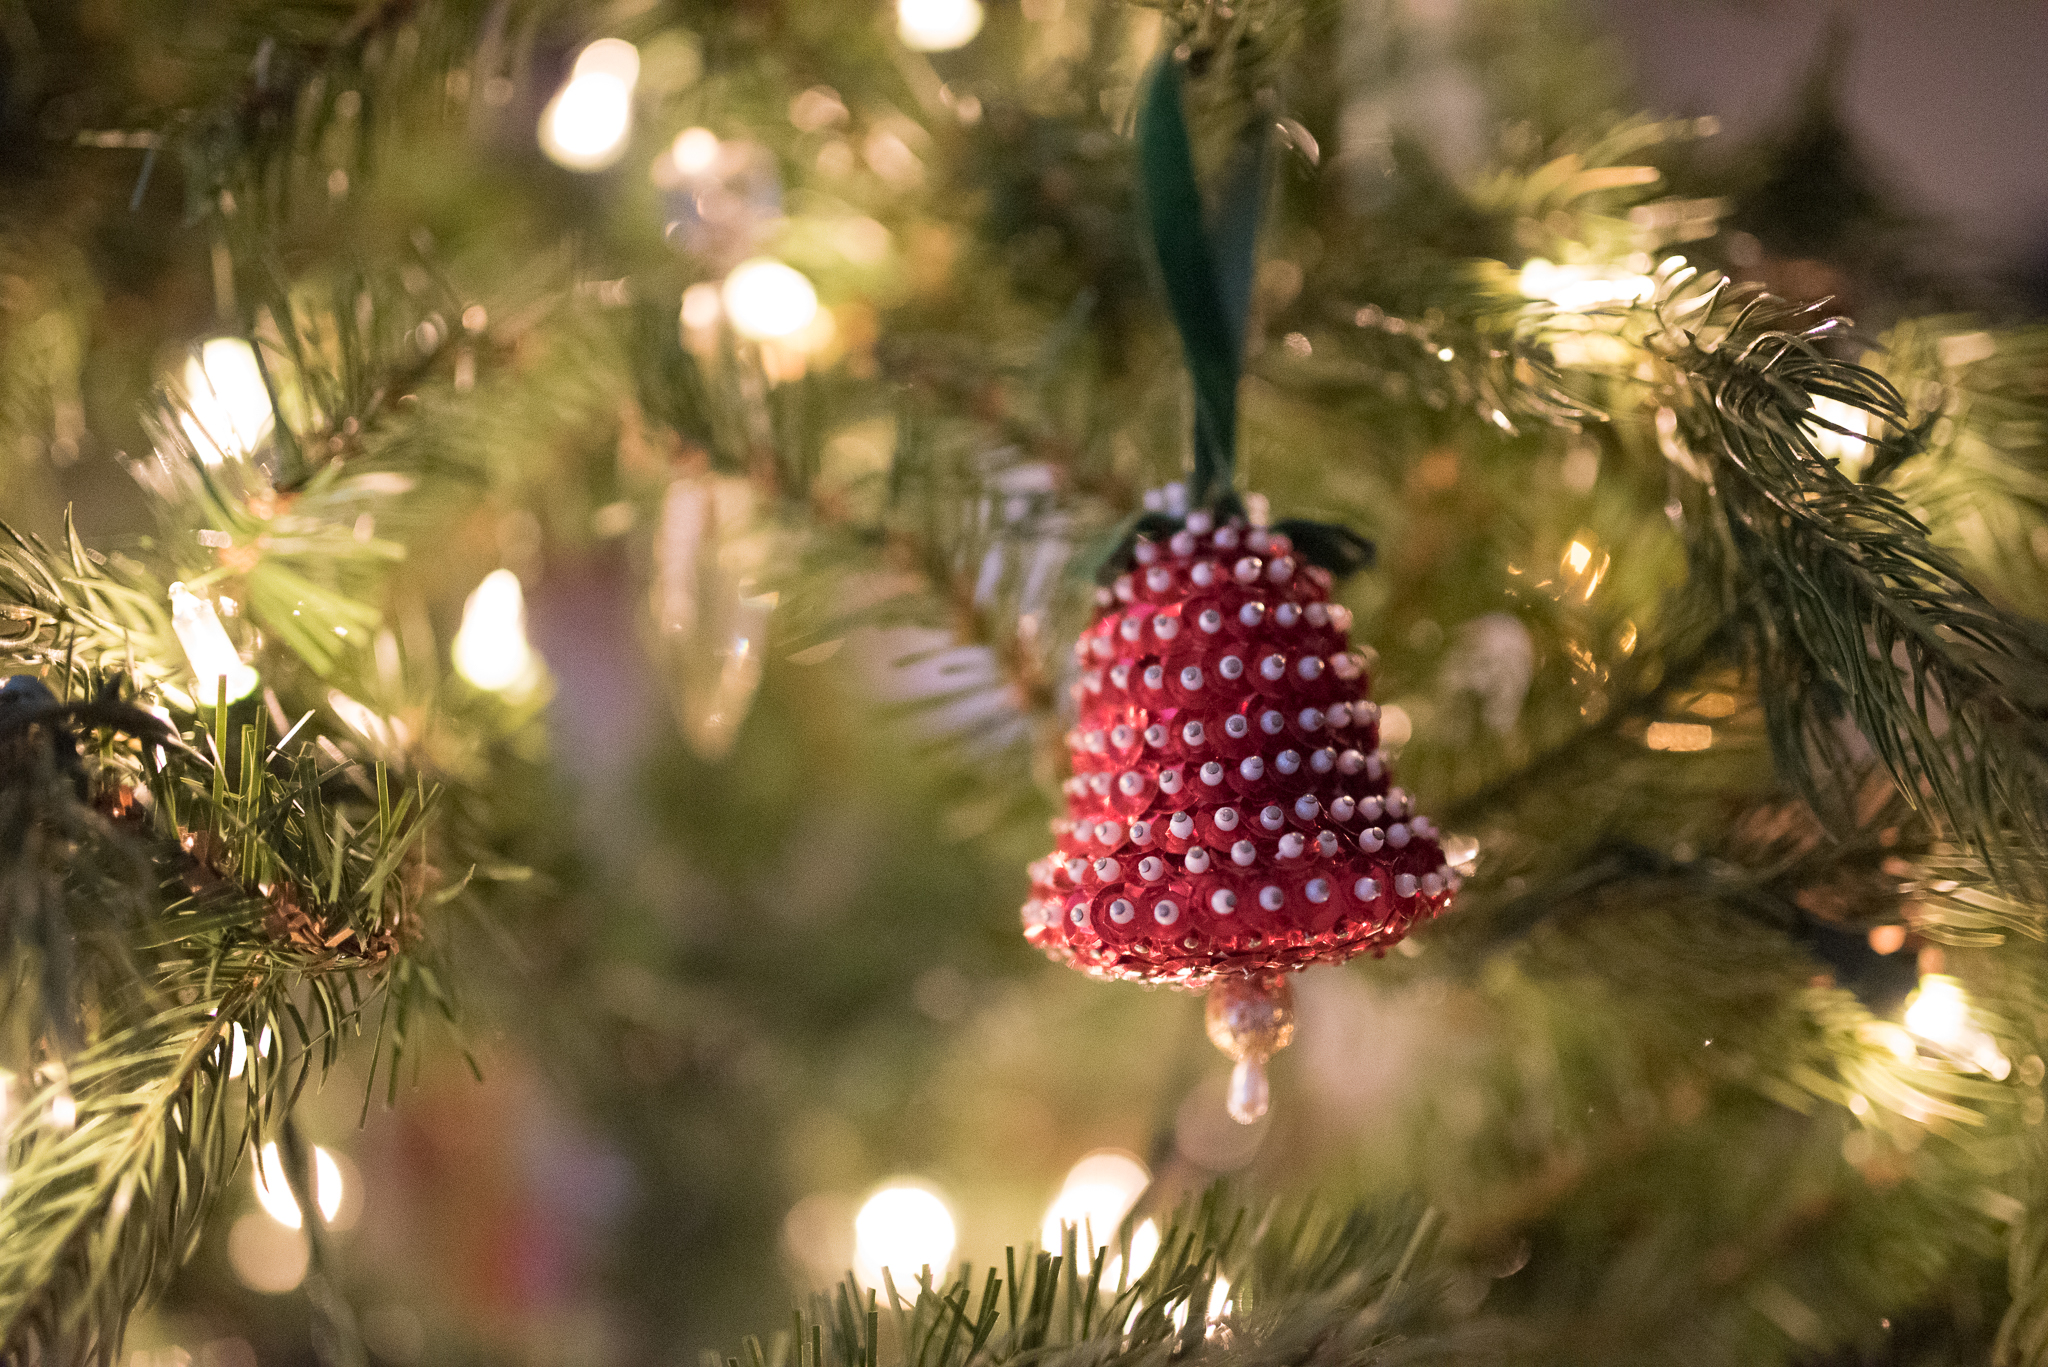 Lindsey Victoria Photography holiday traditions handmade ornaments family lifestyle photographer Litchfield County, CT Brooklyn New York City